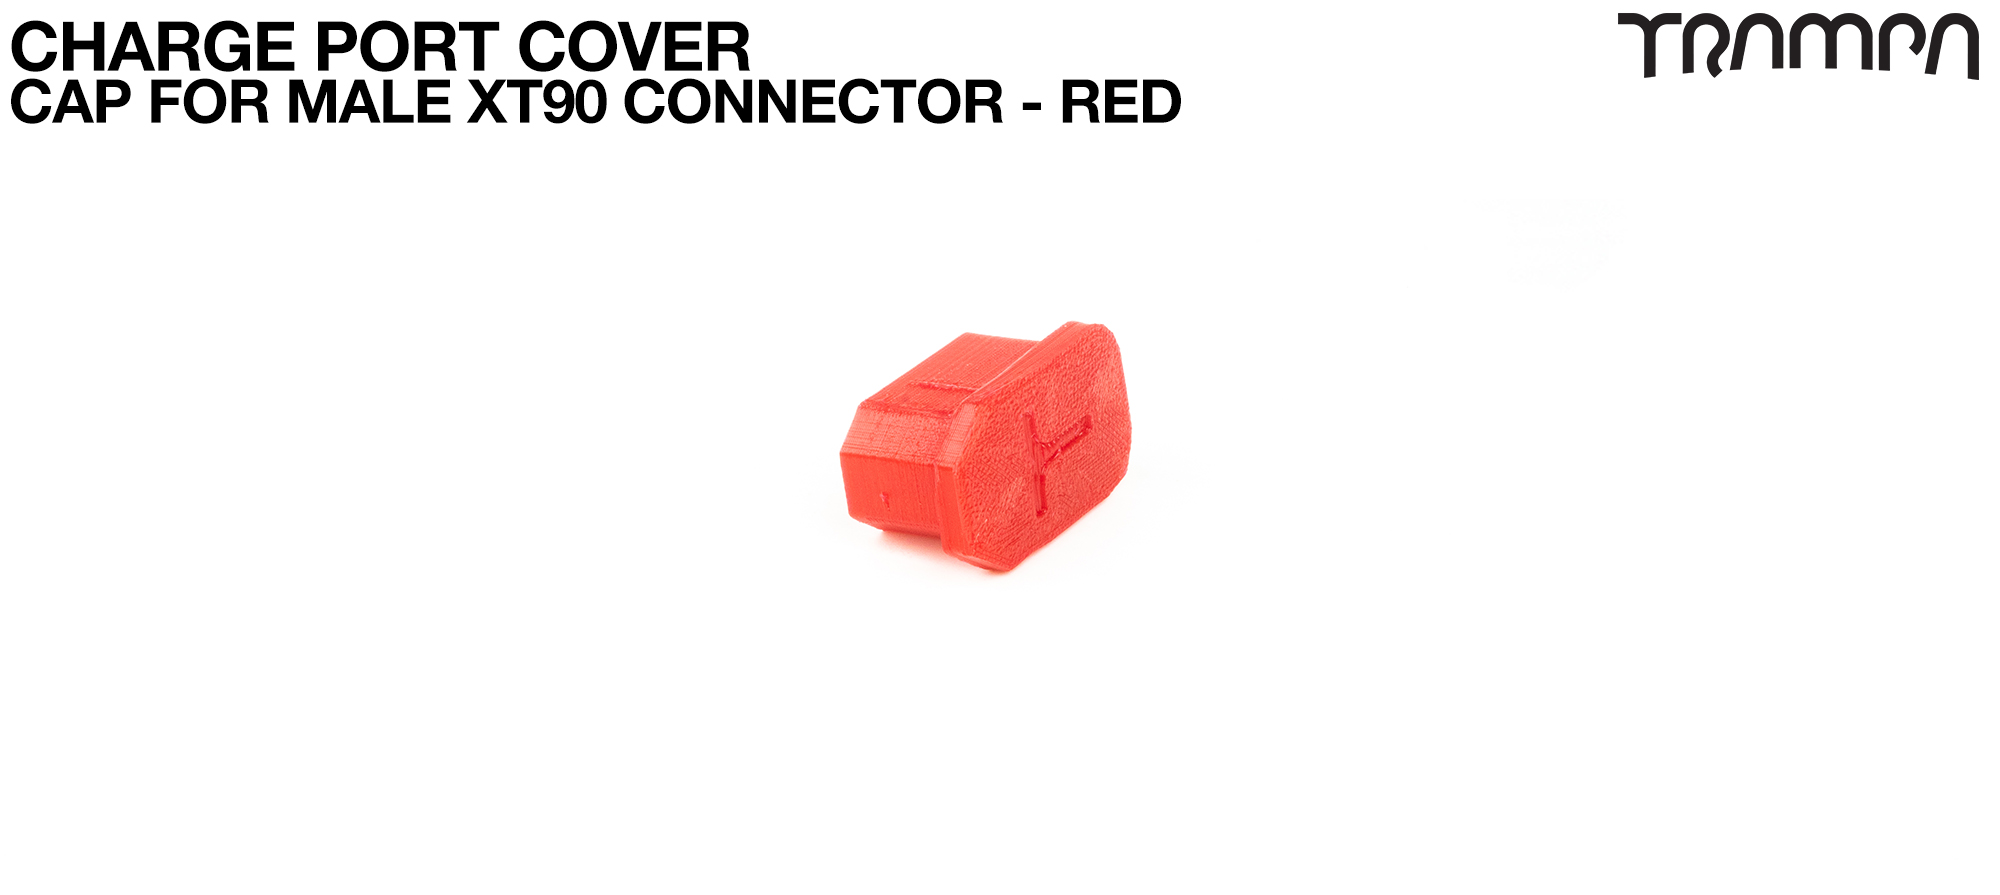 I'd like a RED XT90 Charge Port Cover